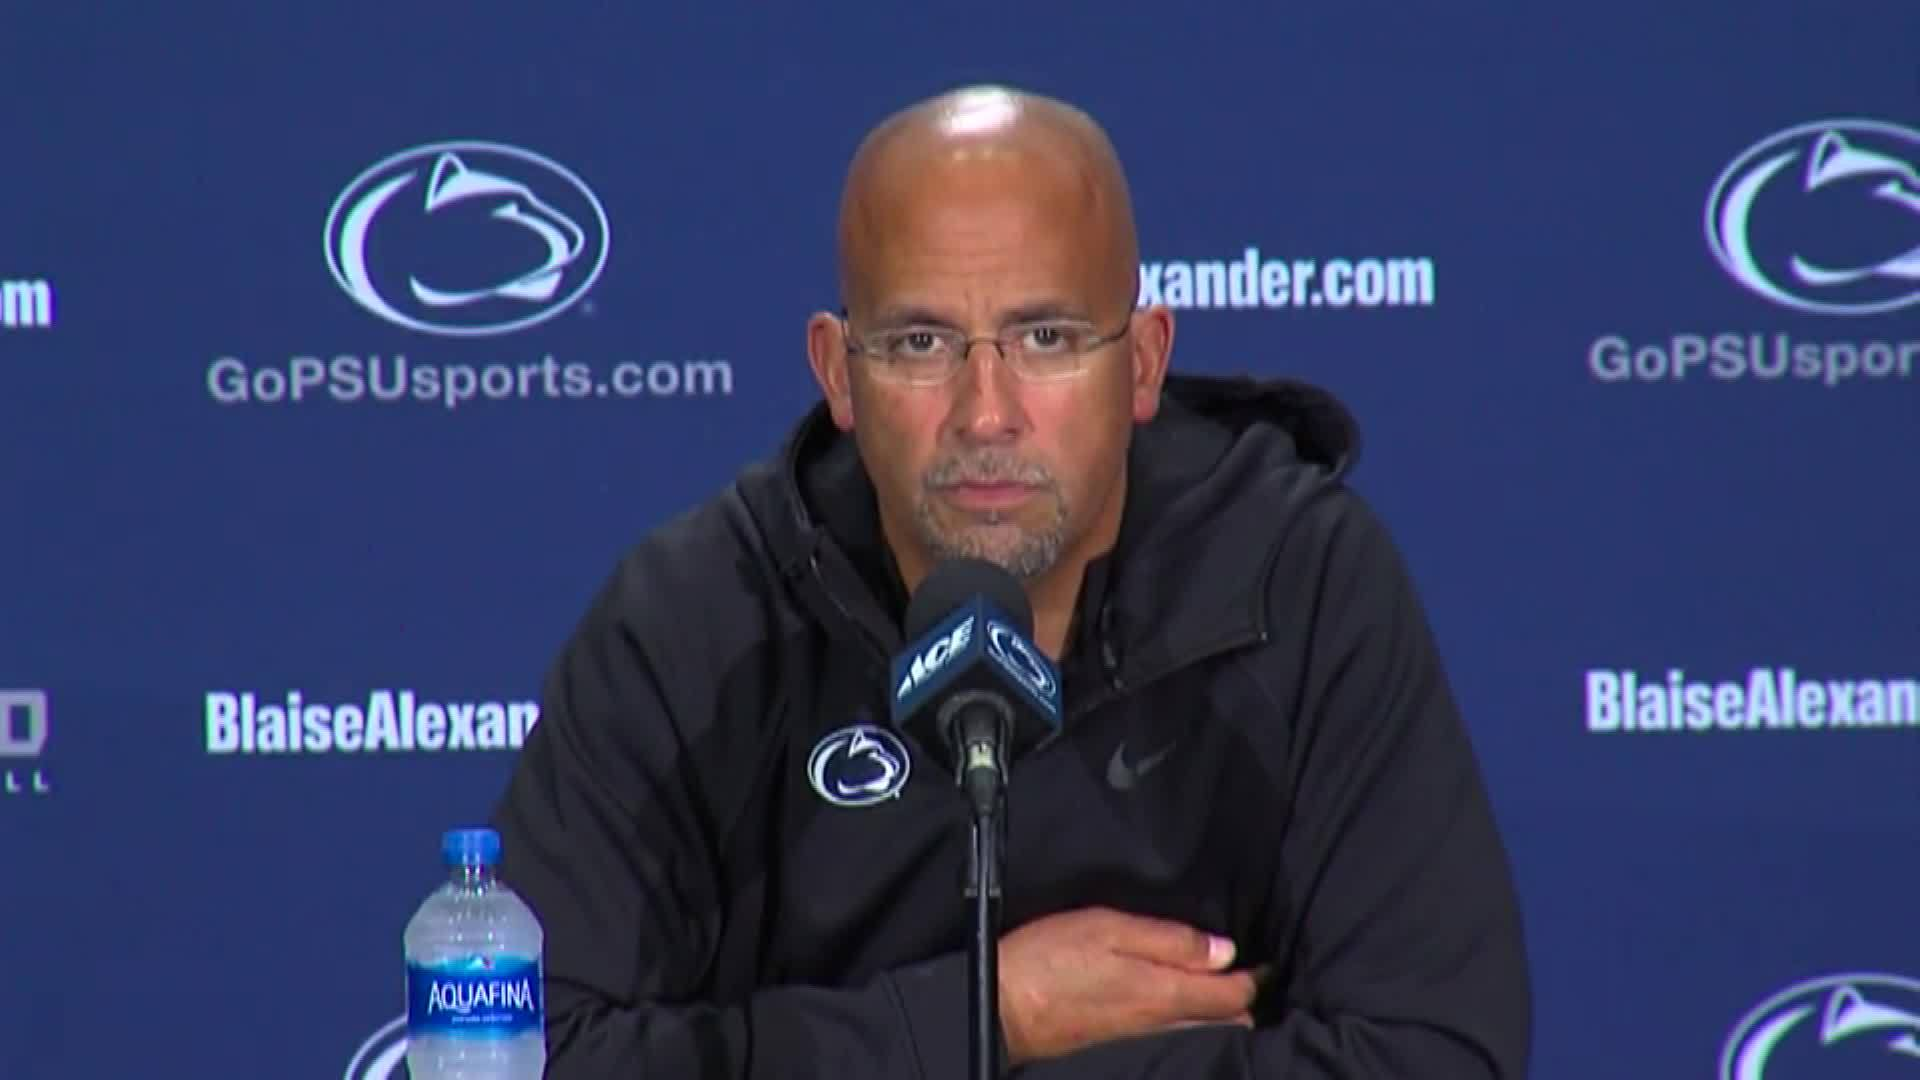 Coach_Franklin_discusses_diversity_in_co_0_20180918173641